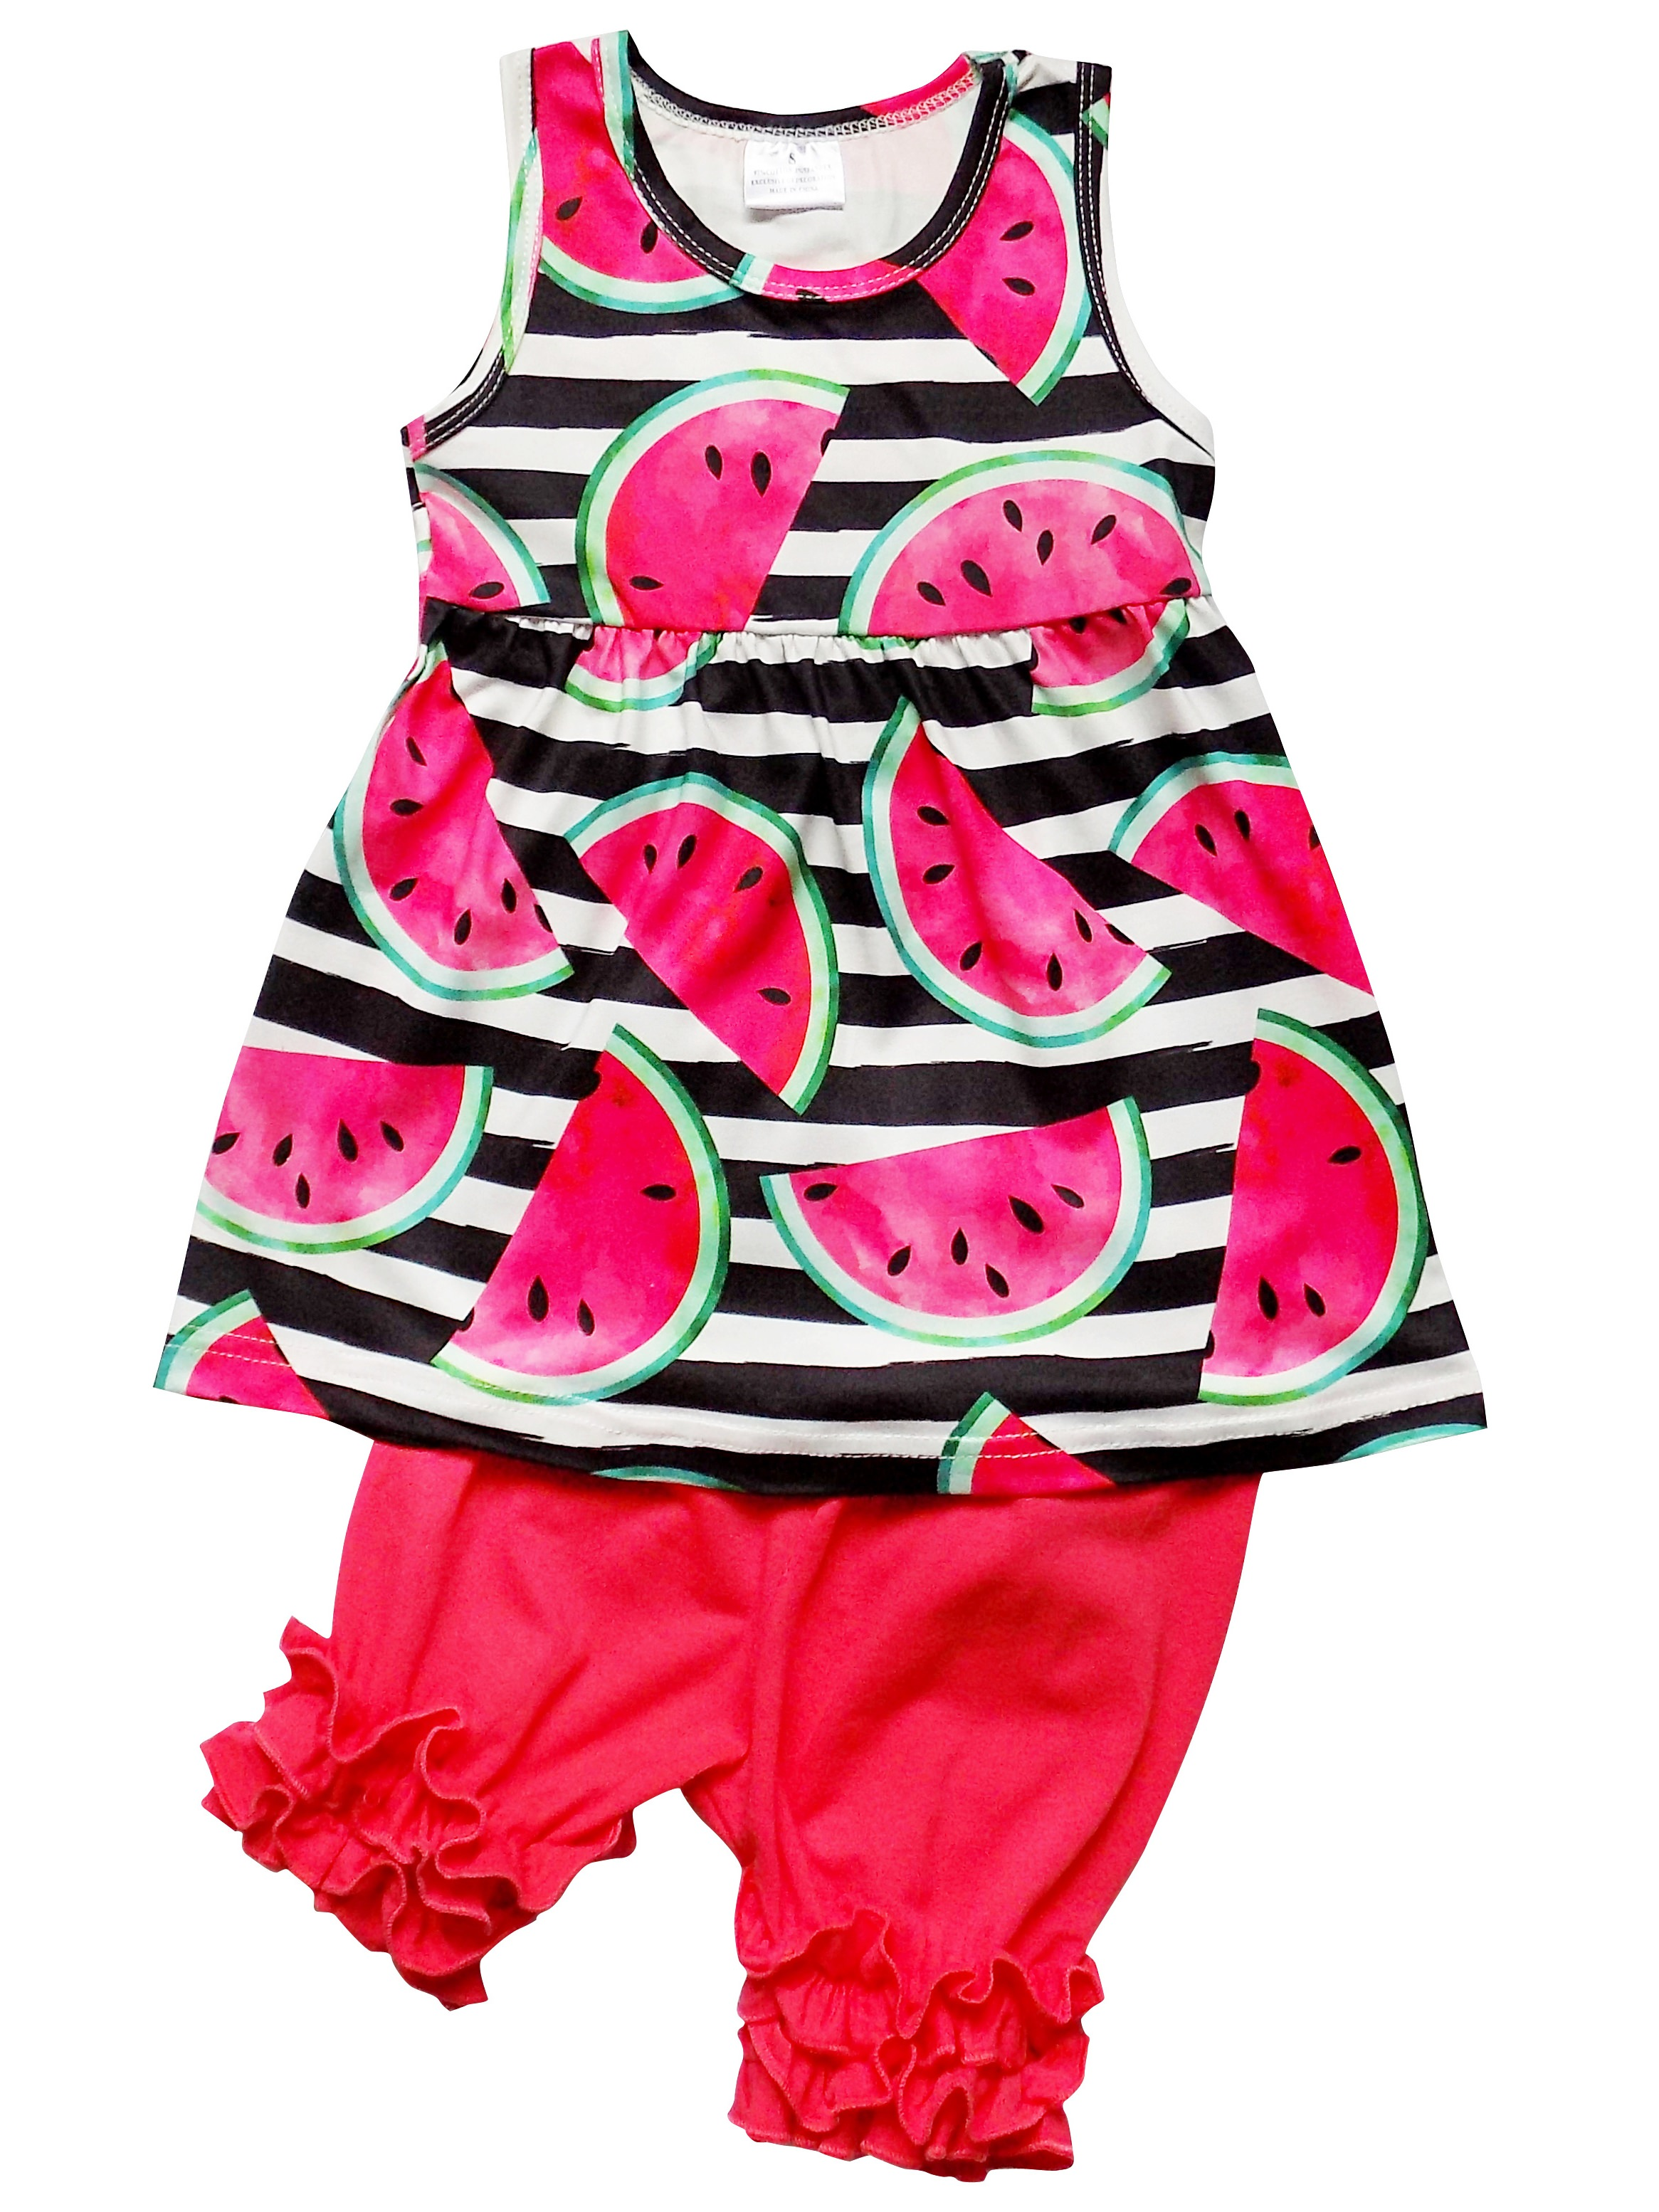 So Sydney Girls or Toddler Deluxe Novelty Ruffle Summer Boutique Shorts Outfit